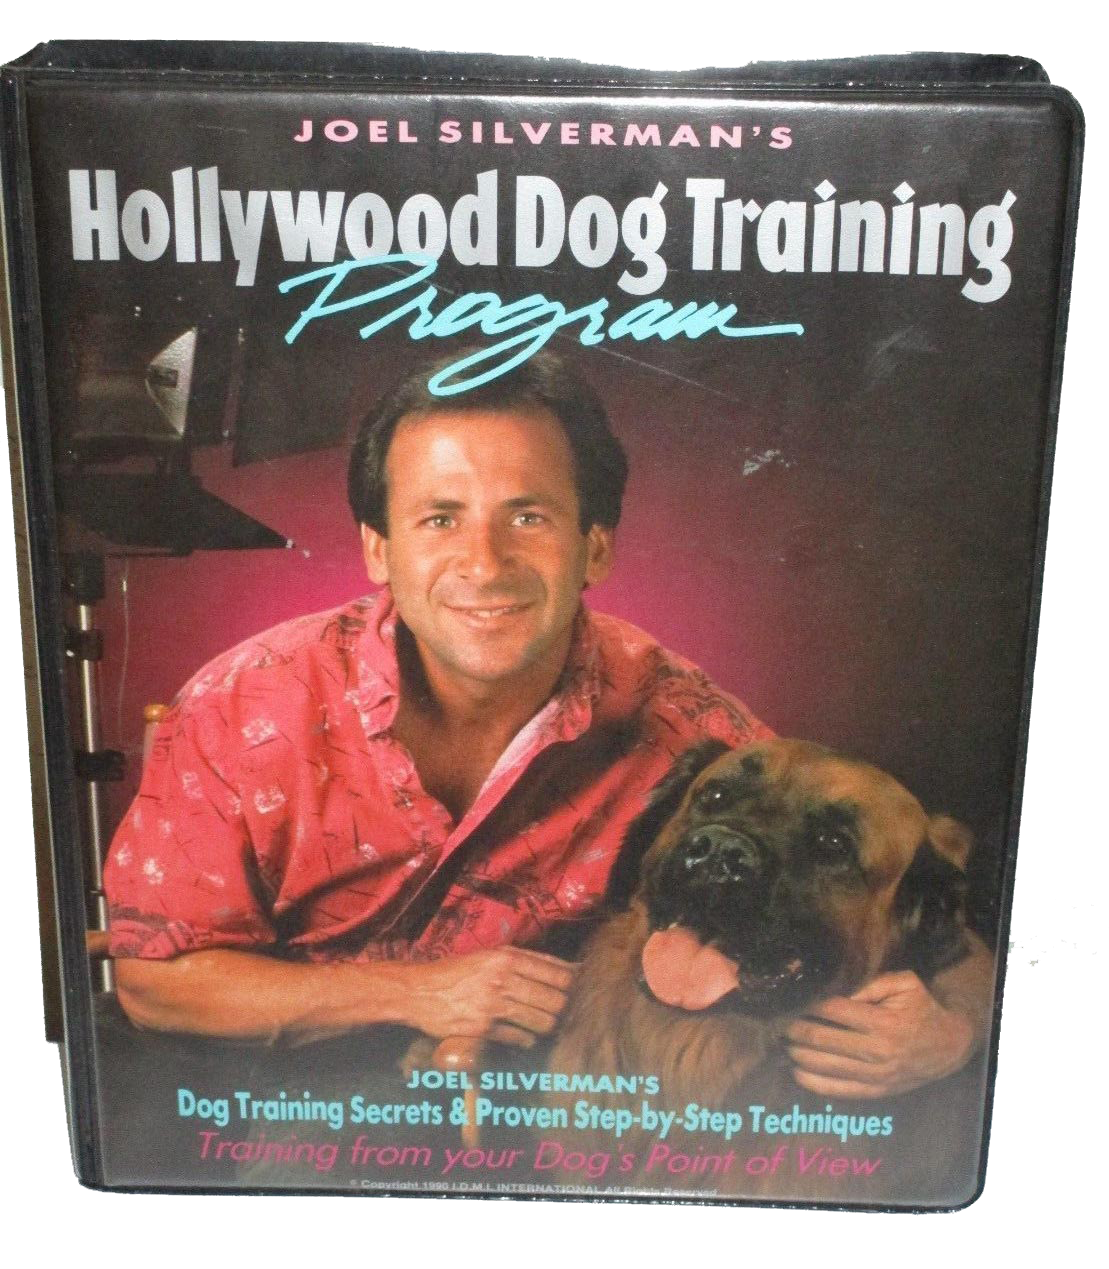 Joel Silverman's Hollywood Dog Training Porgram